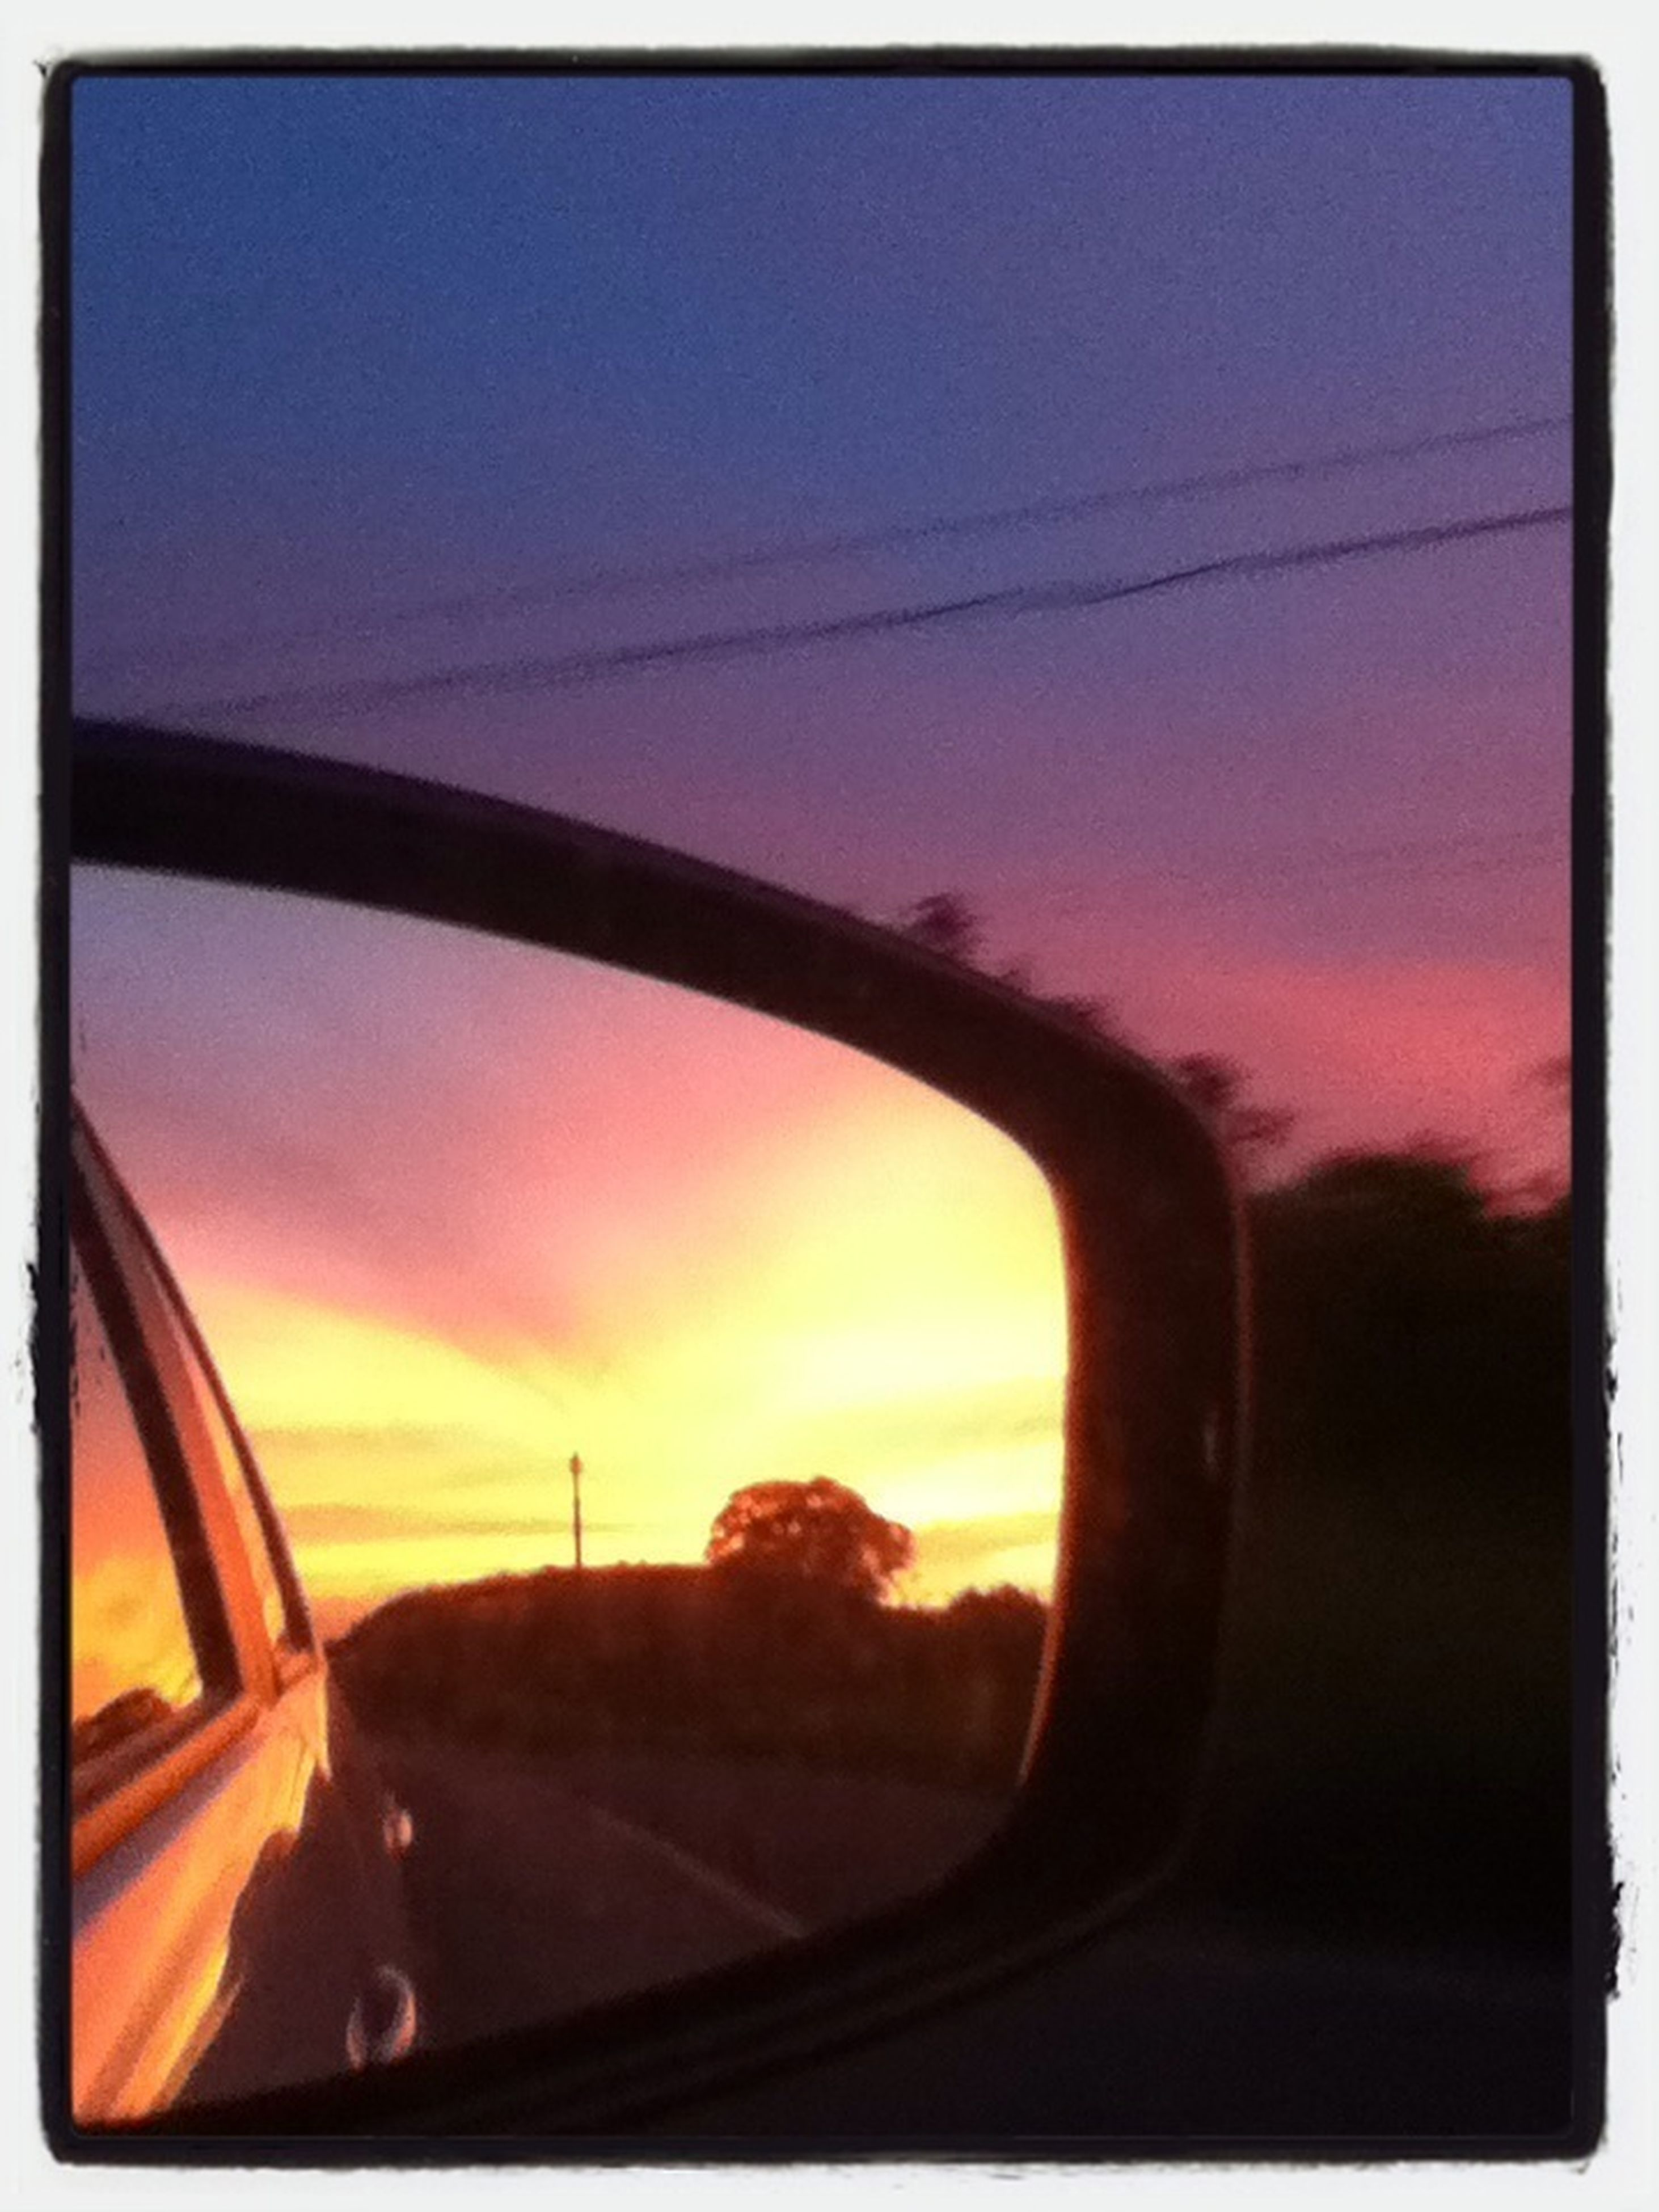 transportation, sunset, mode of transport, sky, vehicle interior, car, land vehicle, glass - material, transparent, side-view mirror, transfer print, orange color, reflection, auto post production filter, window, cloud - sky, travel, car interior, windshield, part of